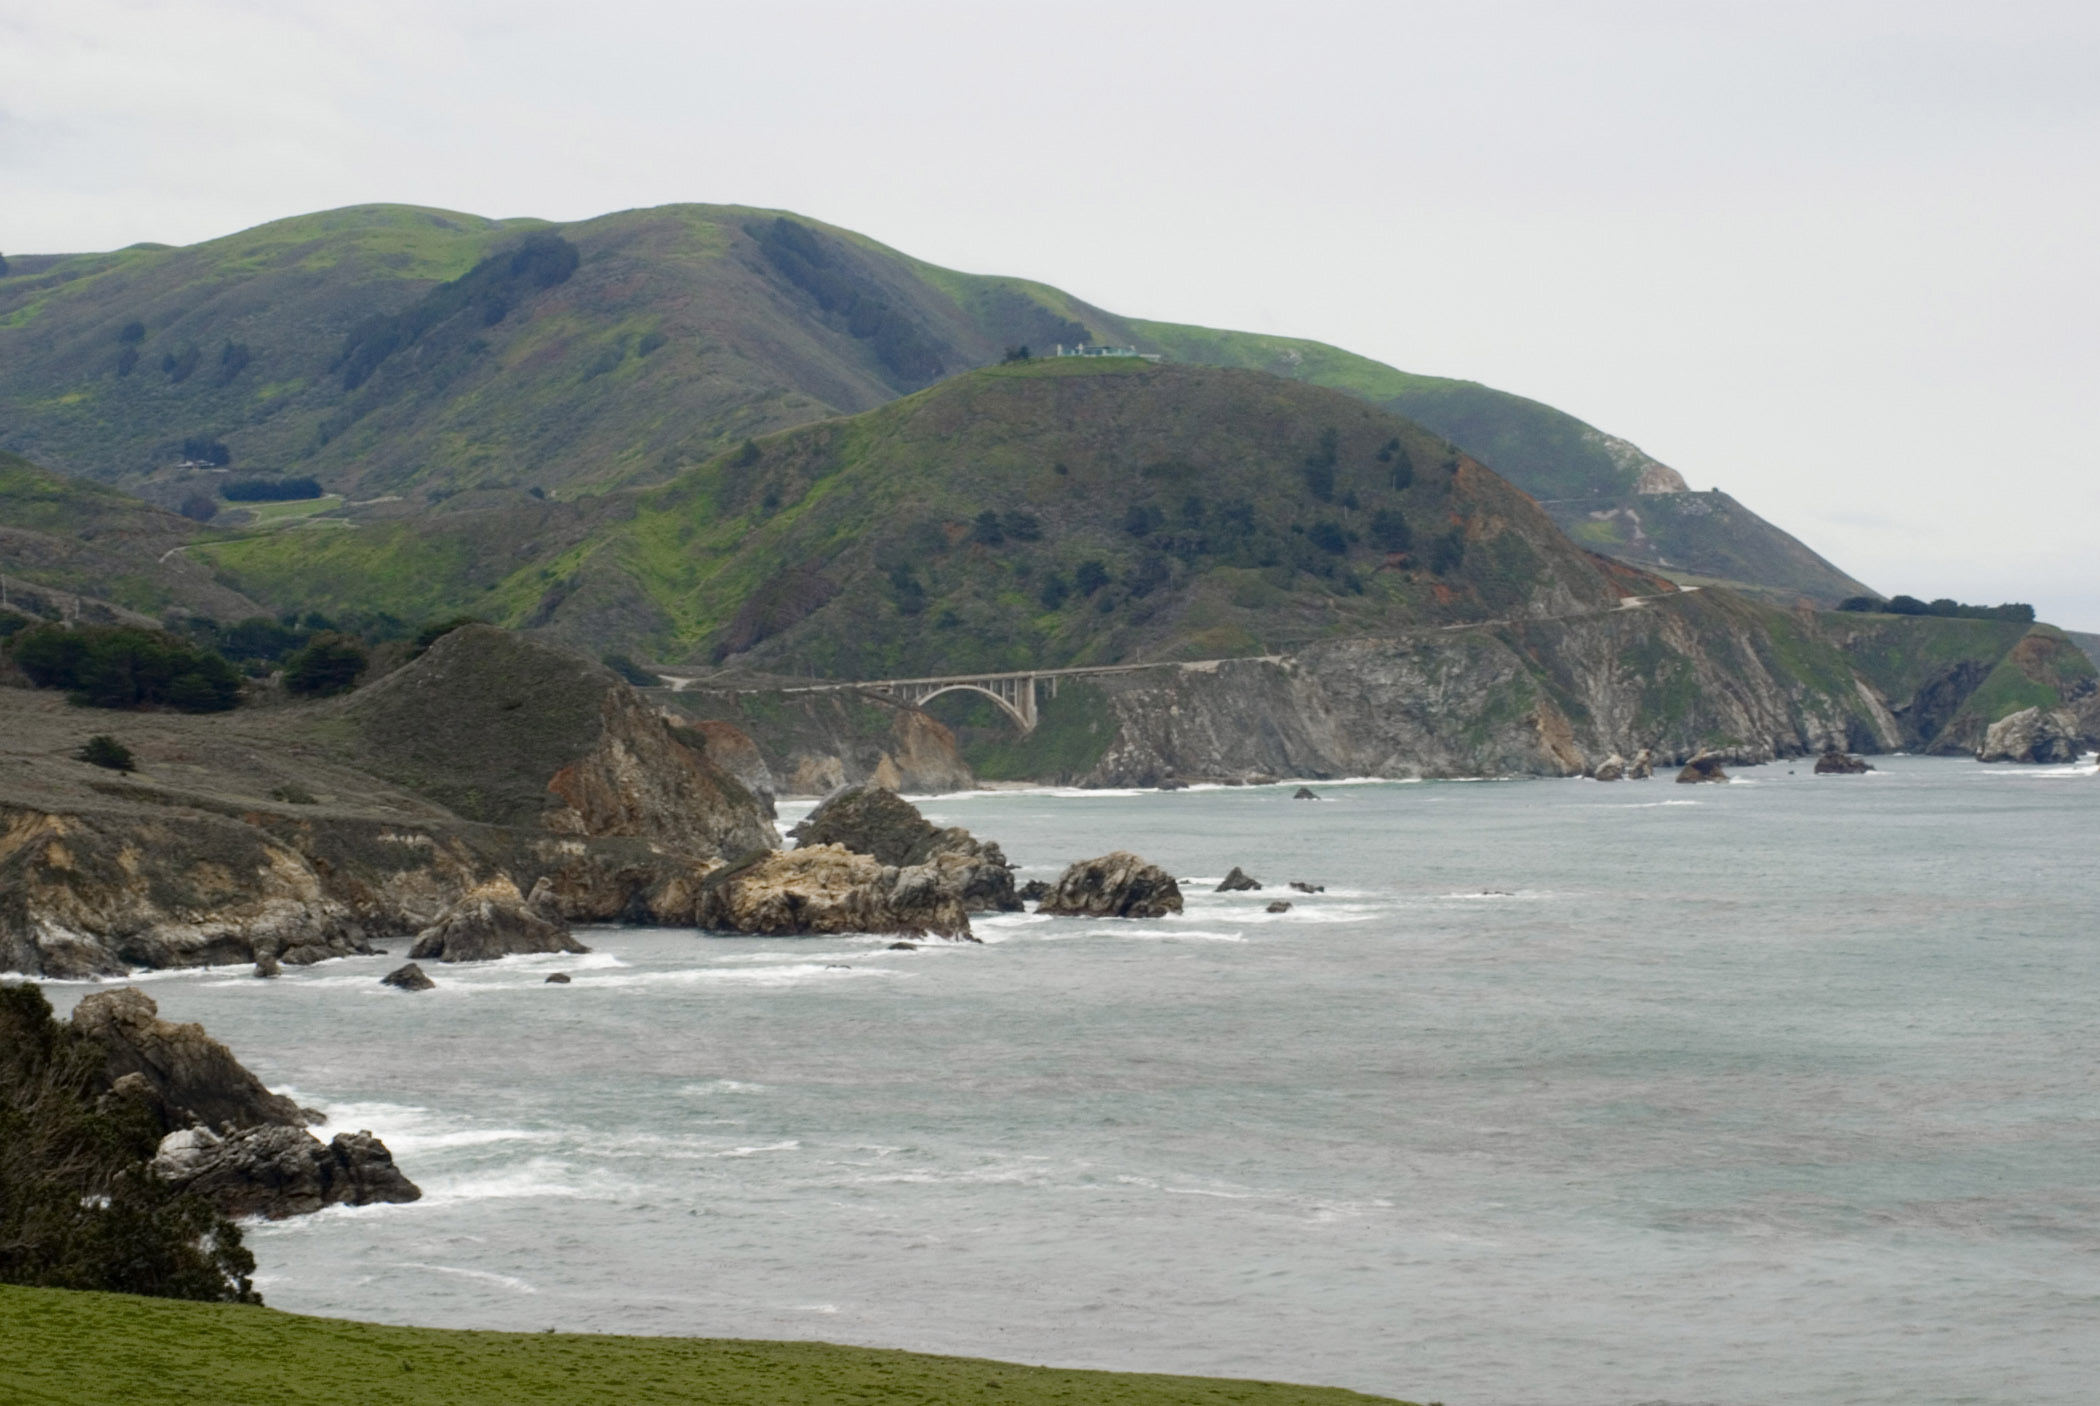 Scenic of Rocky Creek Coastline in California, USA